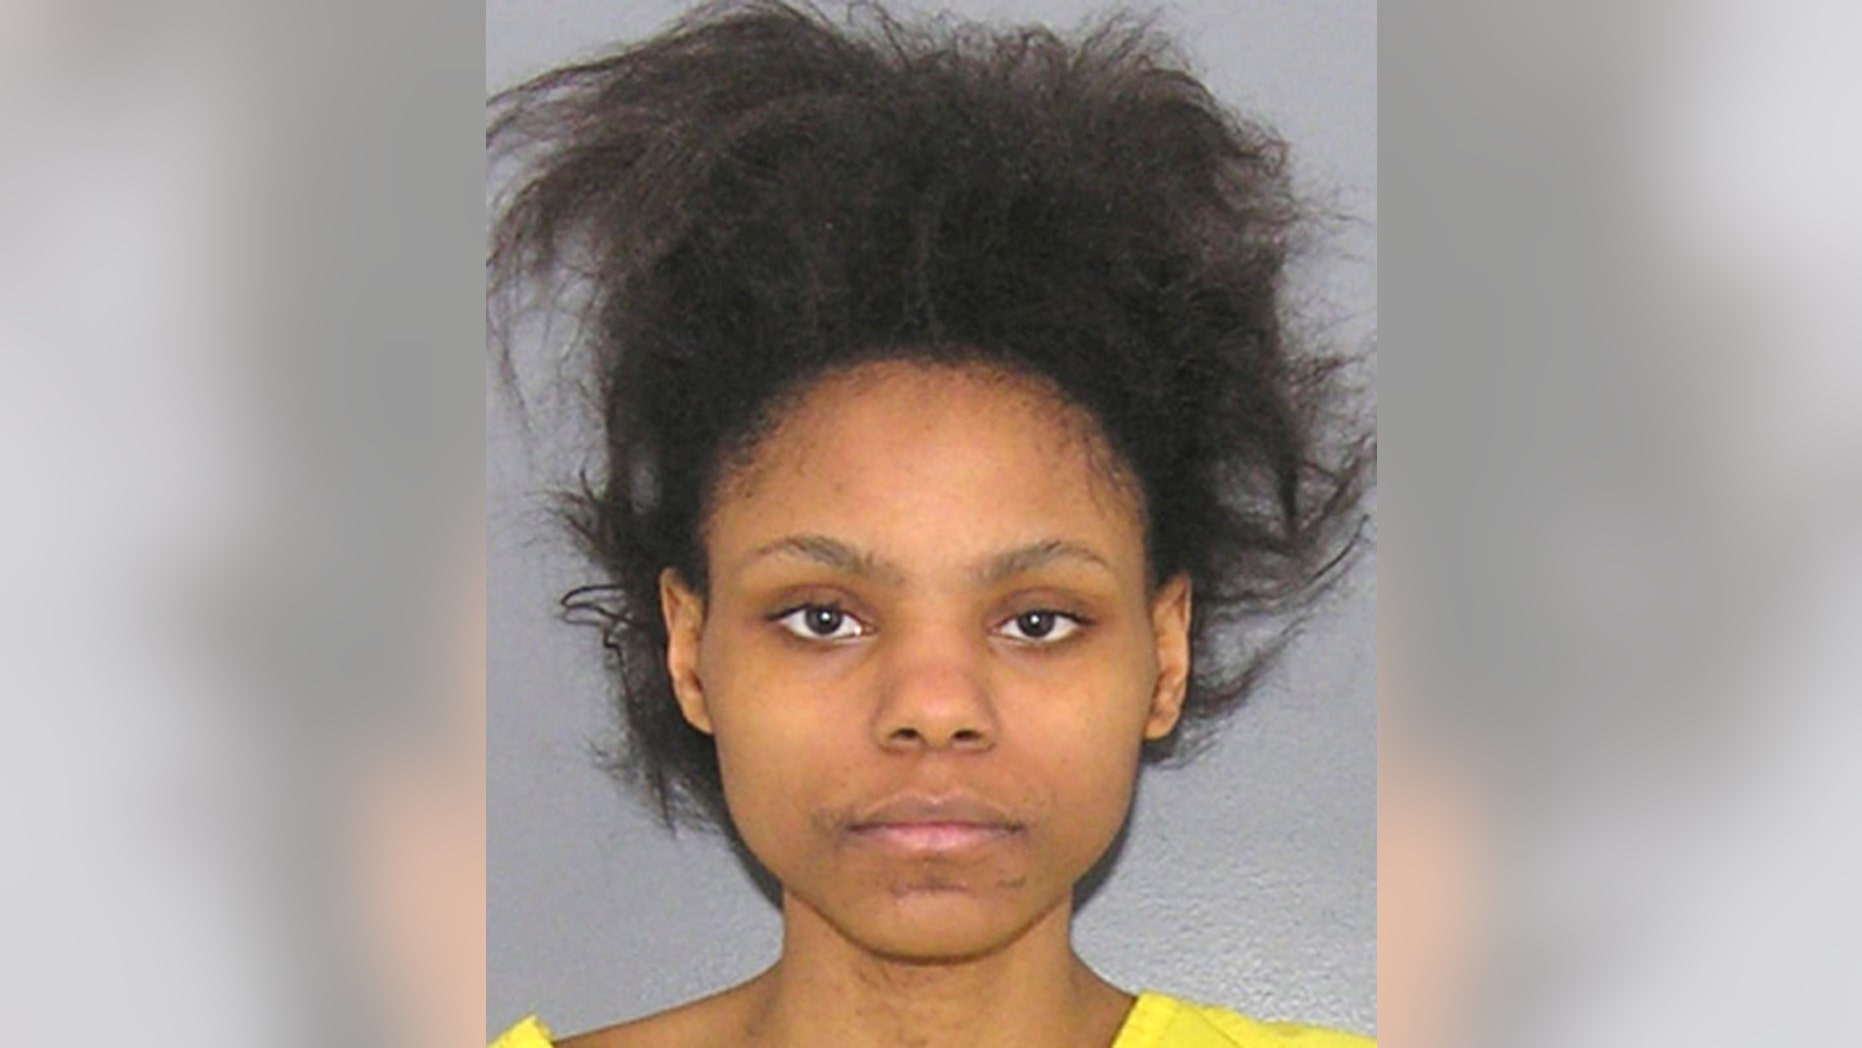 FILE - This booking photo provided by the Hamilton County, Ohio Sheriff shows Deasia Watkins in Cincinnati.  A Hamilton County judge on Tuesday, April 28, 2015, found Watkins incompetent for trial on an aggravated murder charge.  Watkins, 20, is accused of decapitating her 3-month-old daughter.  (Hamilton County Sheriff via AP)